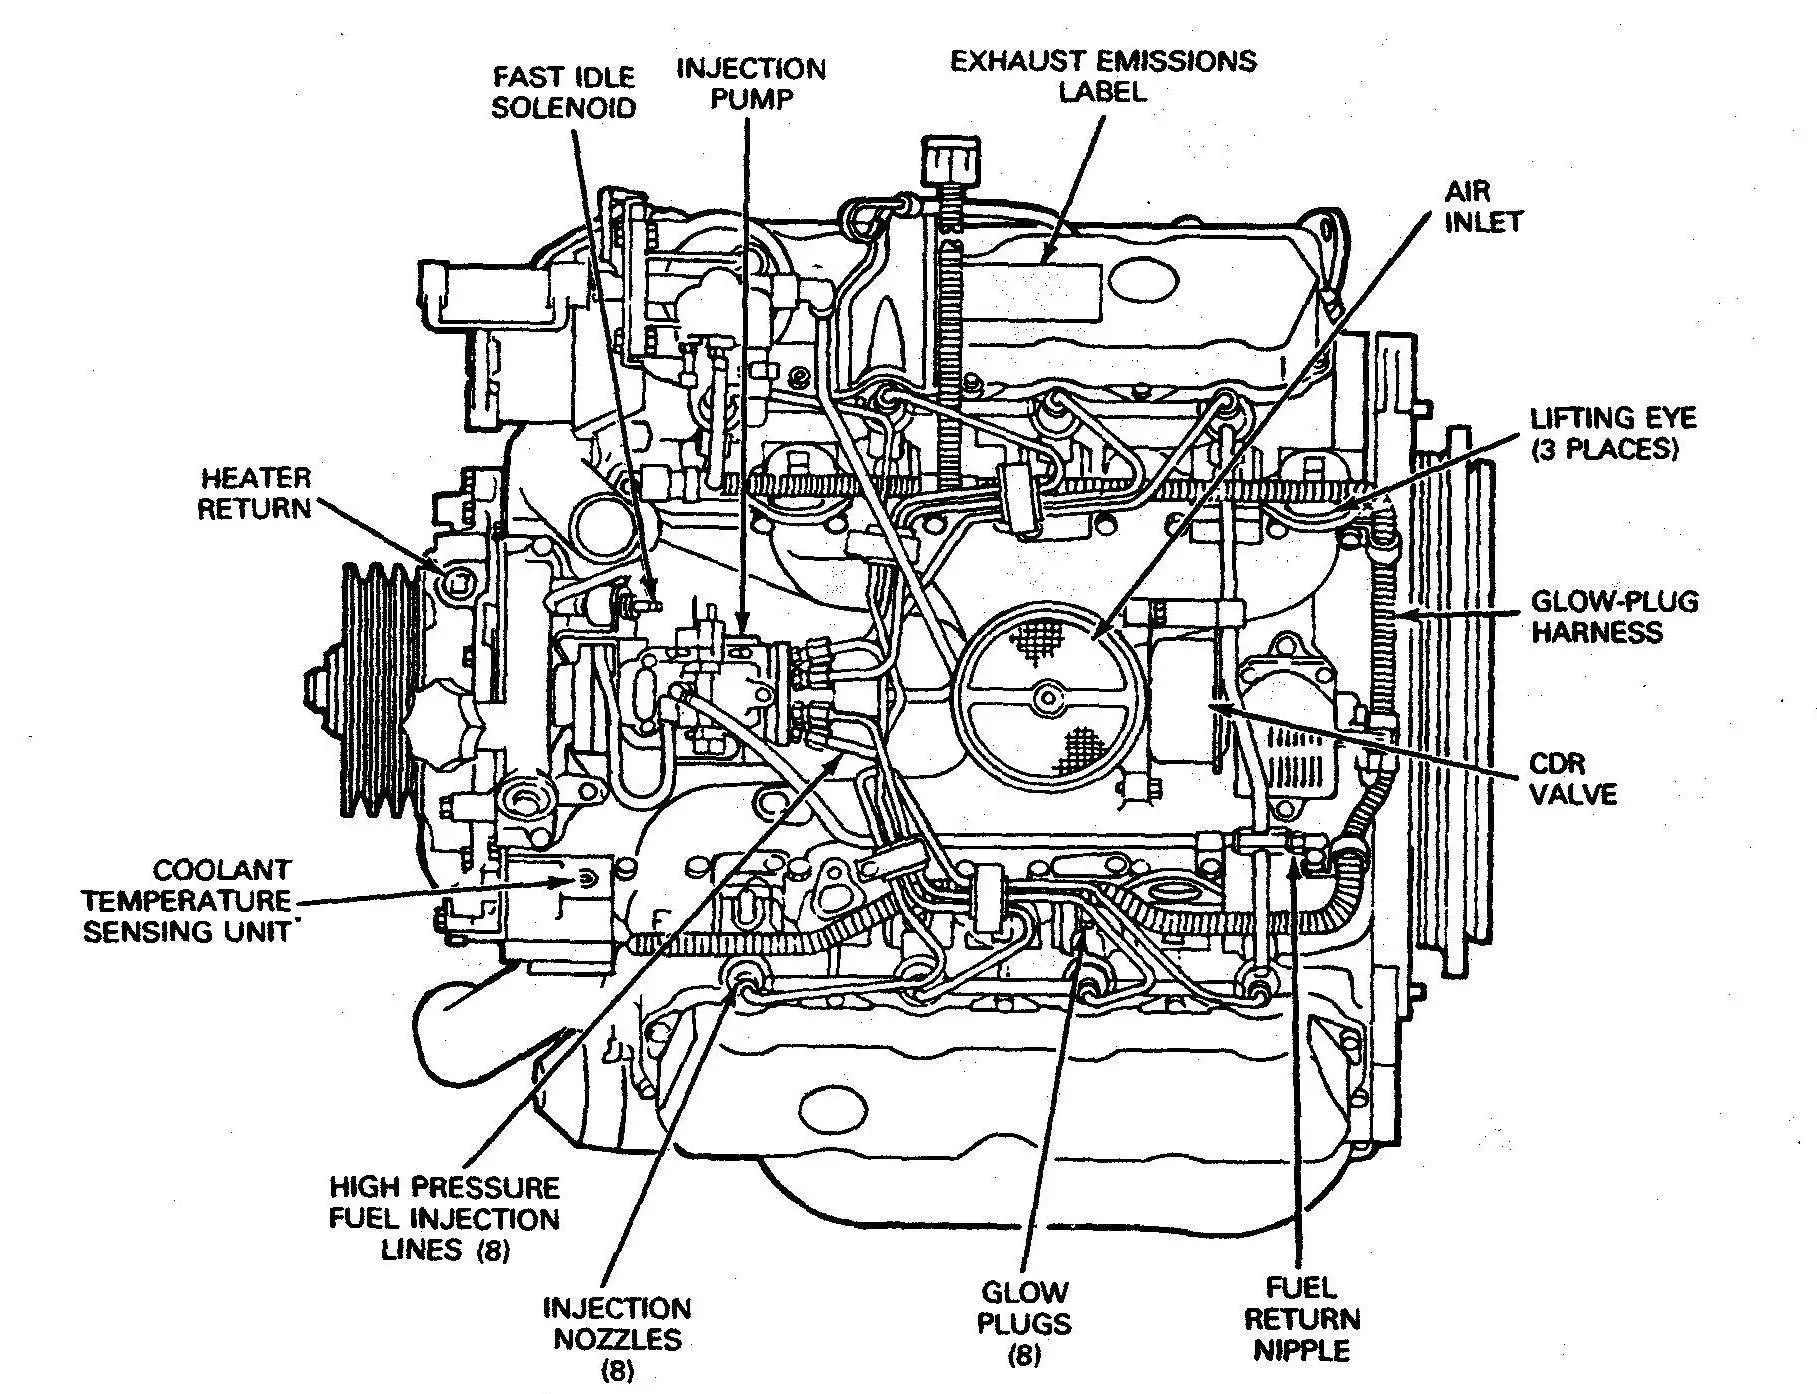 hight resolution of engine and jet drive